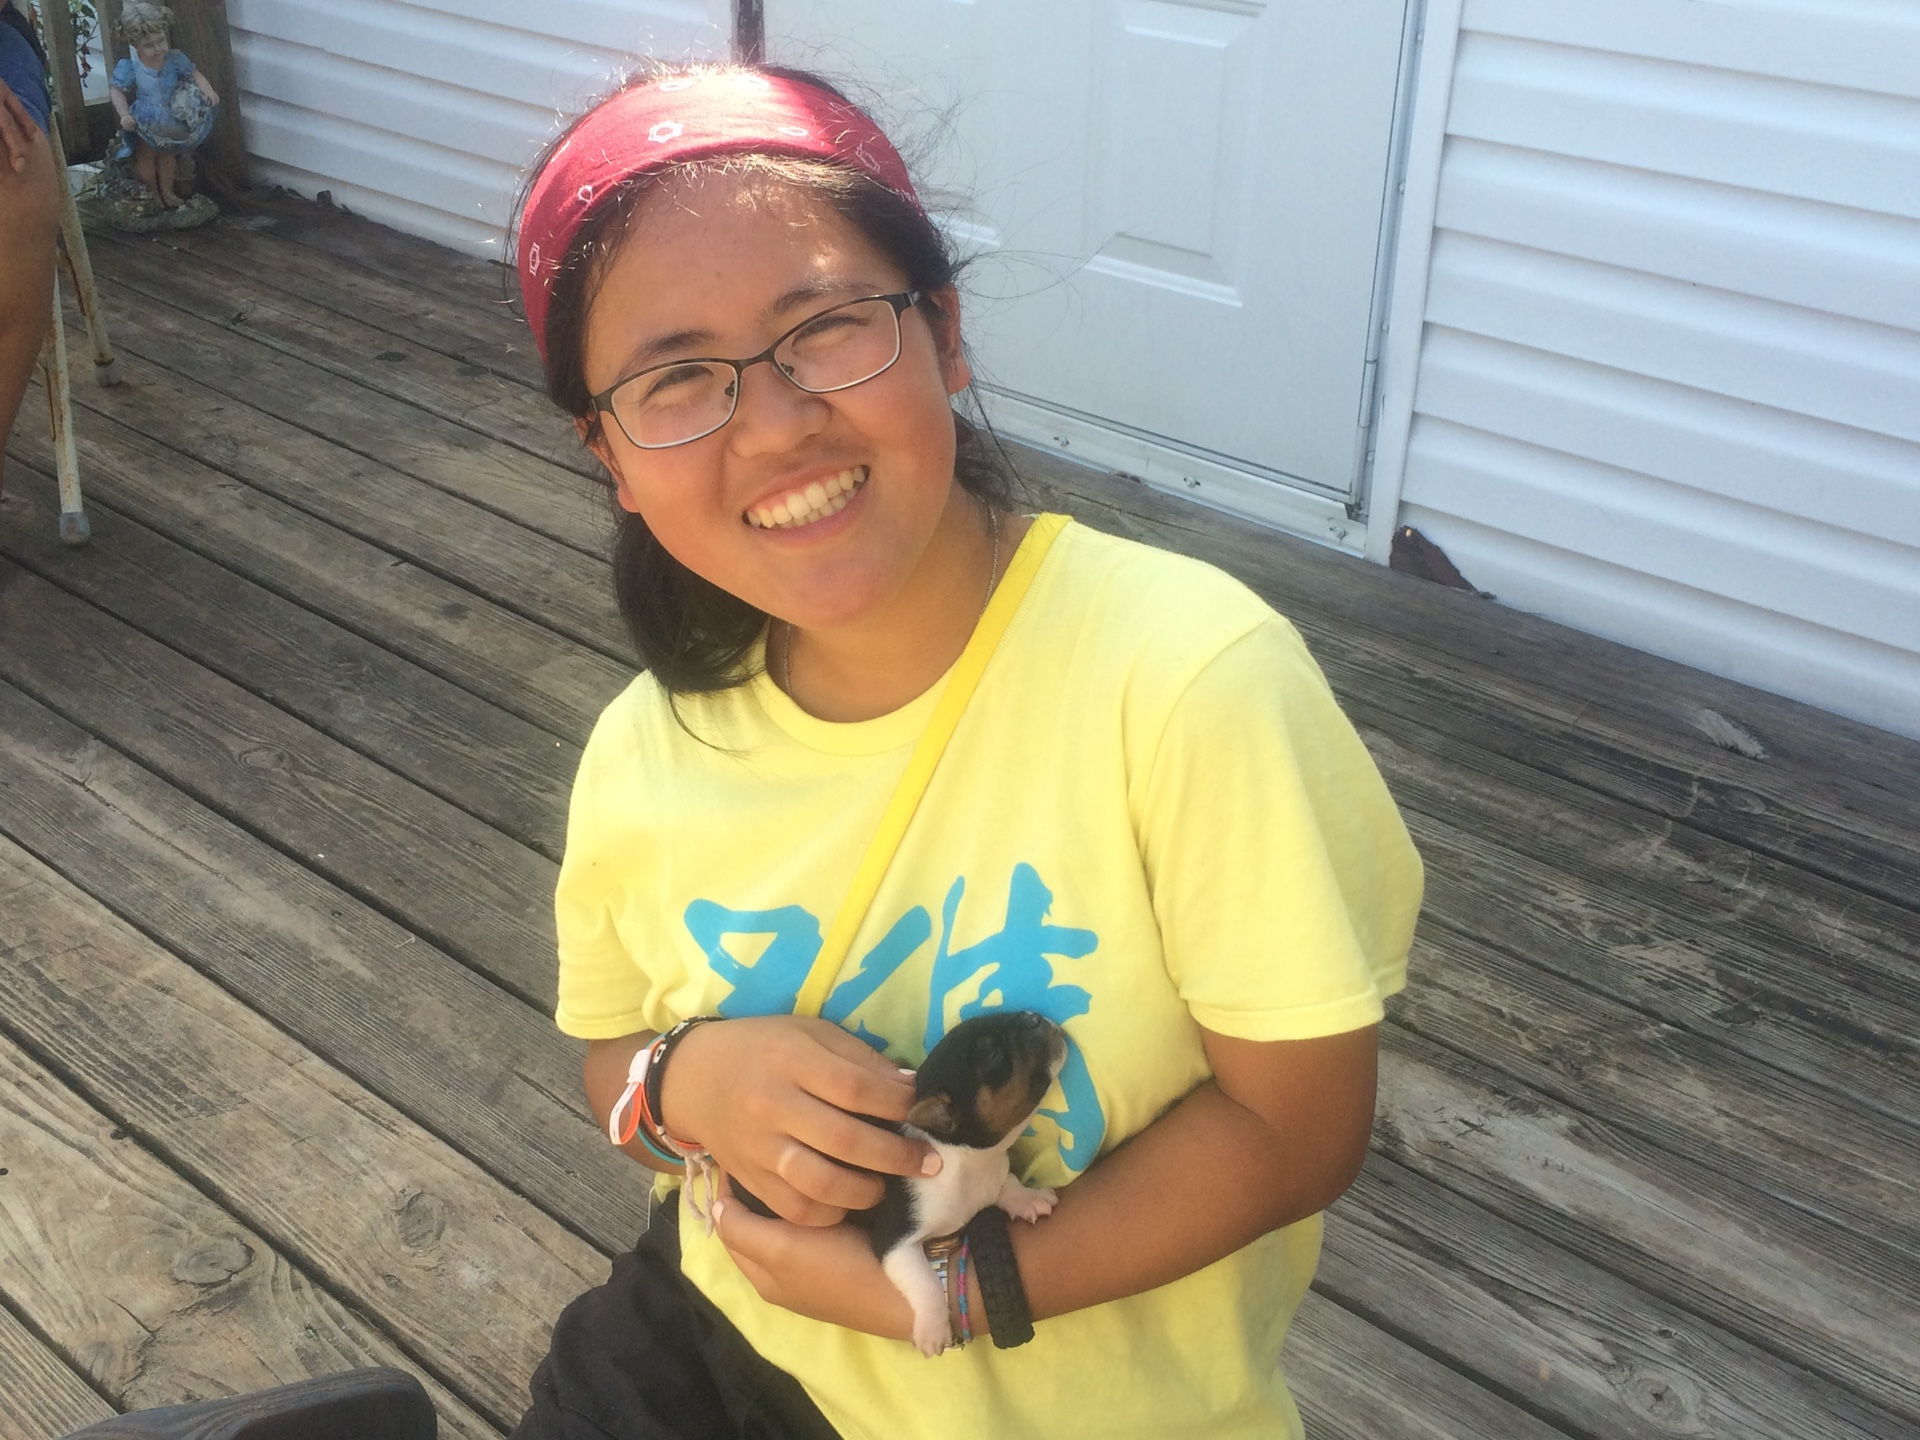 Fuyu Fujioka - Hello! My name is Fuyu Fujioka, I'm 19, and I'm from Bowie, Maryland. The reason I decided to do Cheon Il Guk Missionary is because I had this desire to share the heart of love and family that I experienced last year. Not just keep it to myself, but share it with so many people out there, helping to create an environment where everyone can create memories full of love and joy!